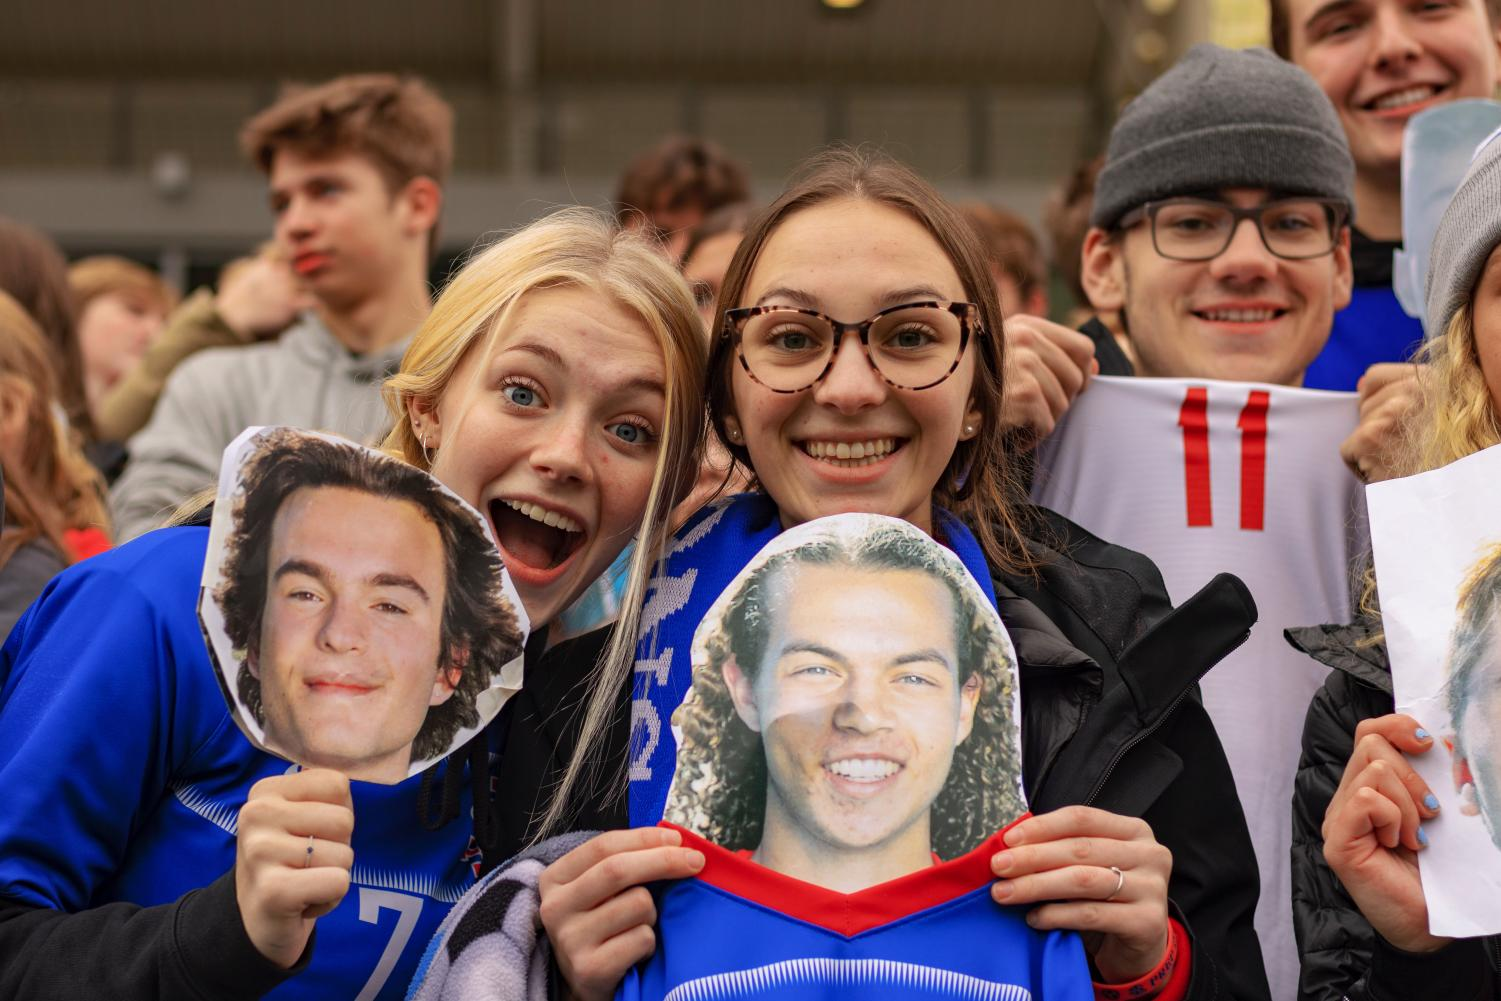 Junior+Lucy+Lawton+and+senior+Kari+Gutmann+cheering+players+with+cut-out+heads+of+seniors+Logan+Warner+and+Luke+Strange.